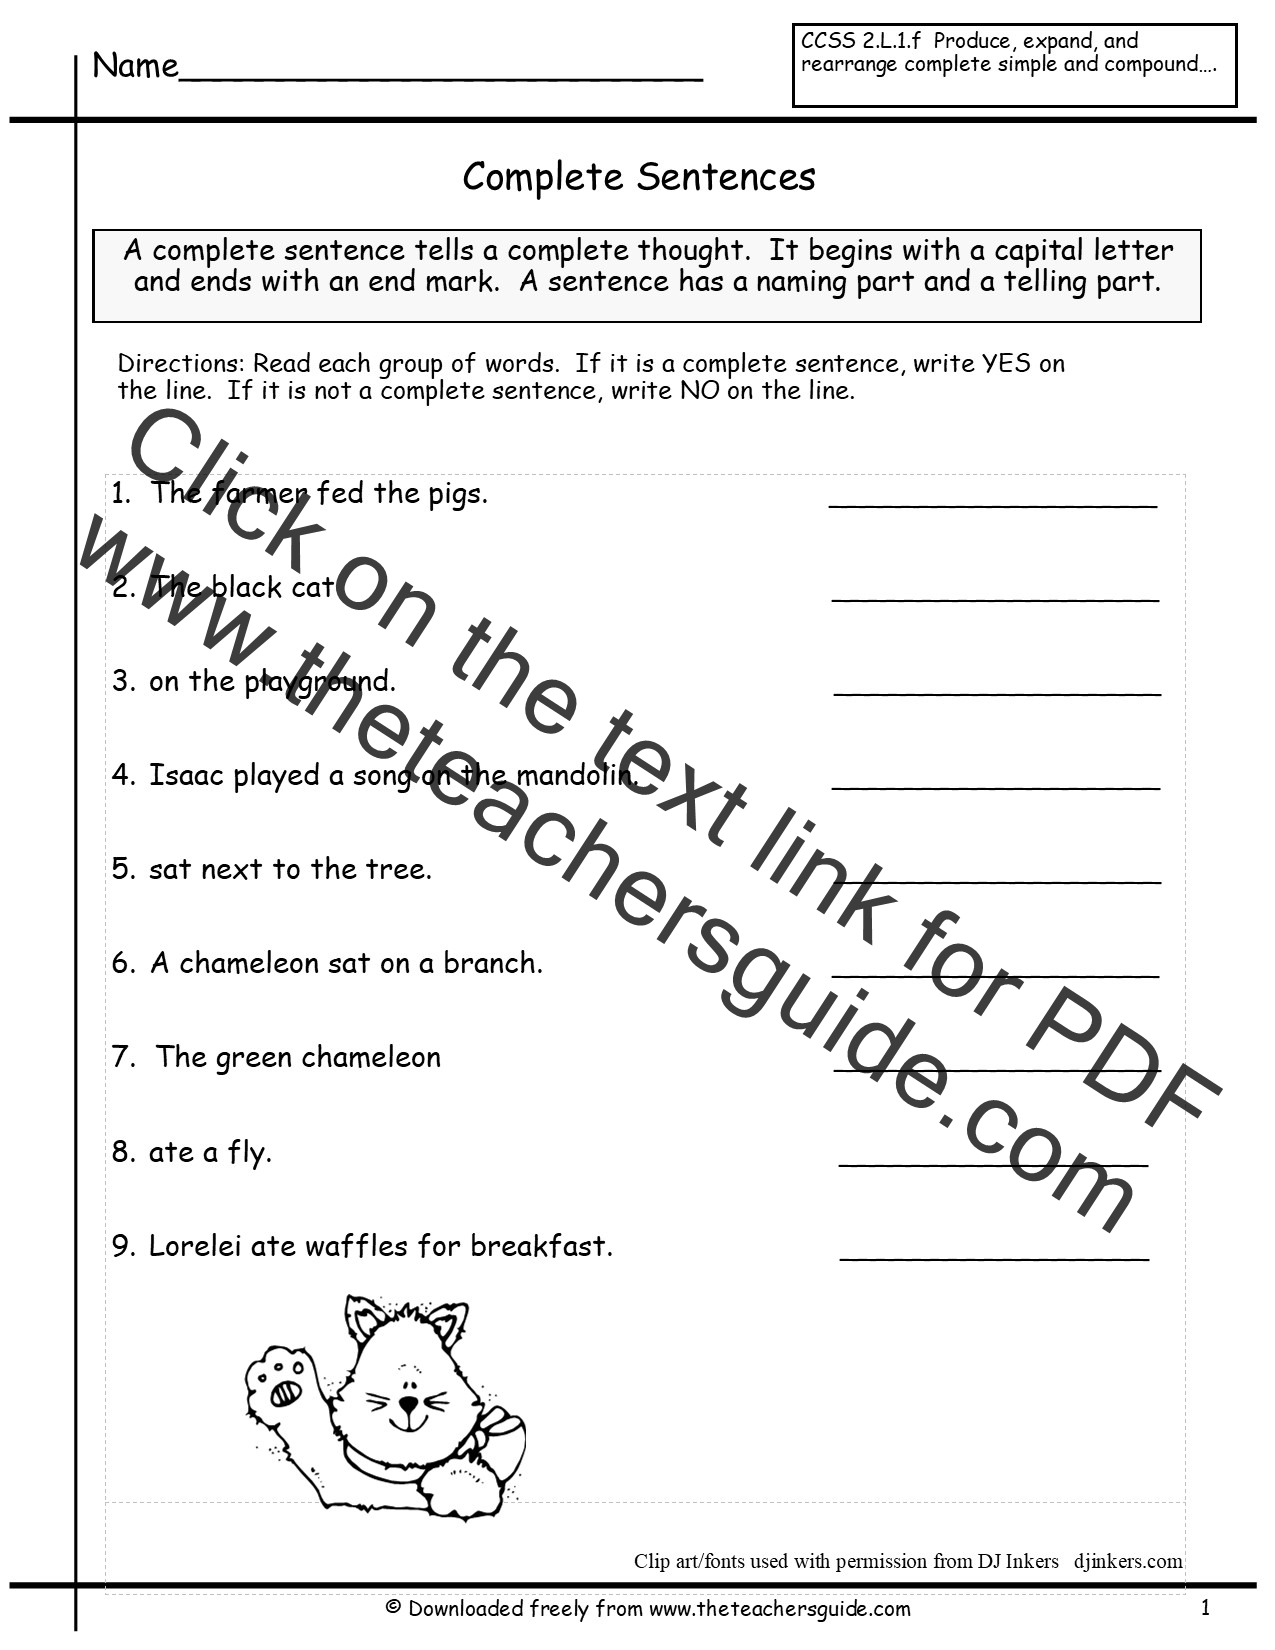 Free Printouts And Worksheets